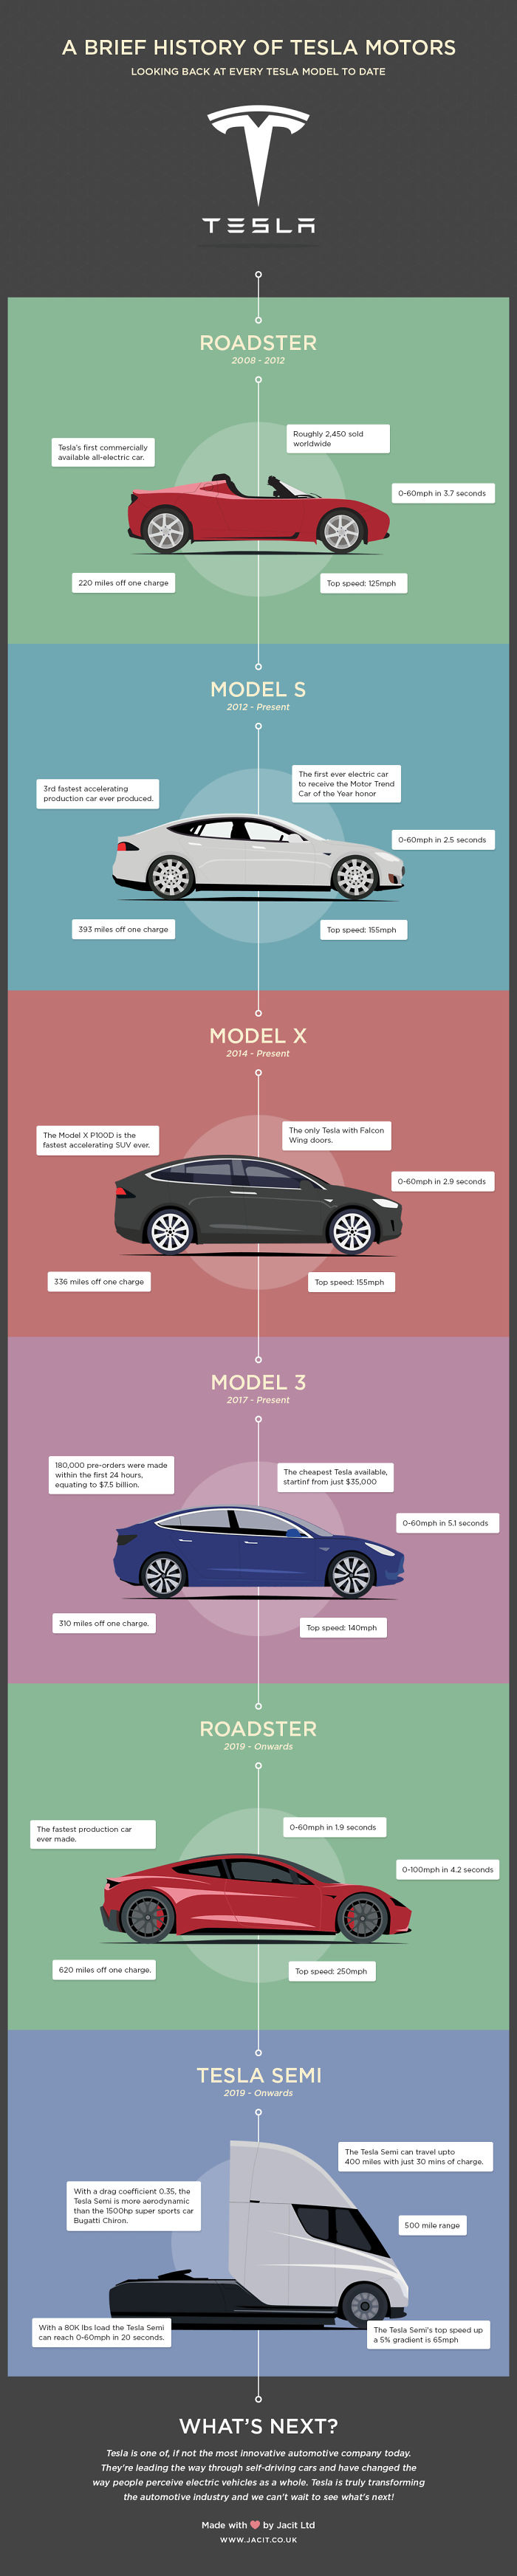 An Infographic I Made About The History Of Tesla